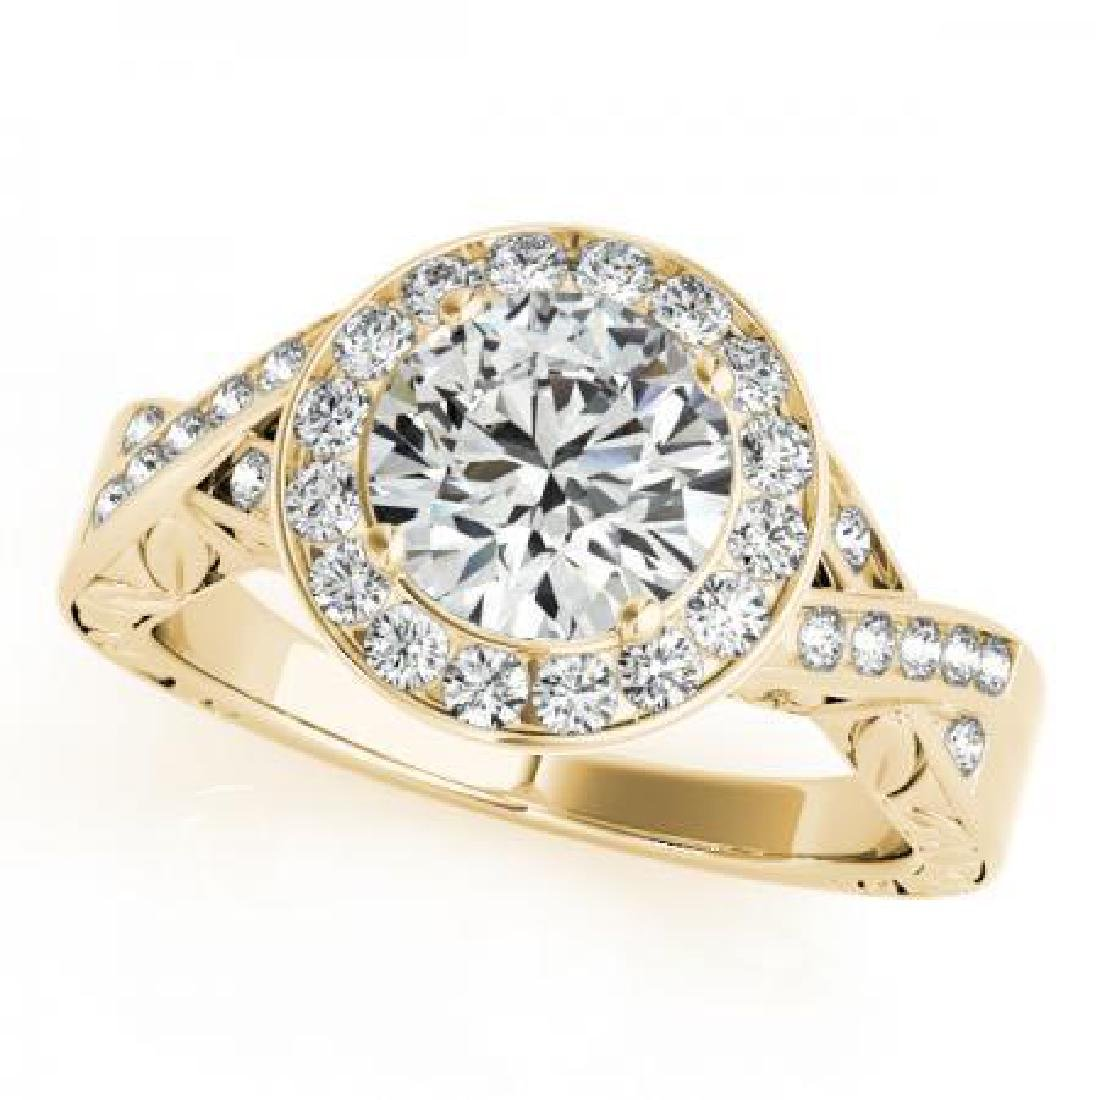 CERTIFIED 18K YELLOW GOLD 1.01 CT G-H/VS-SI1 DIAMOND HA